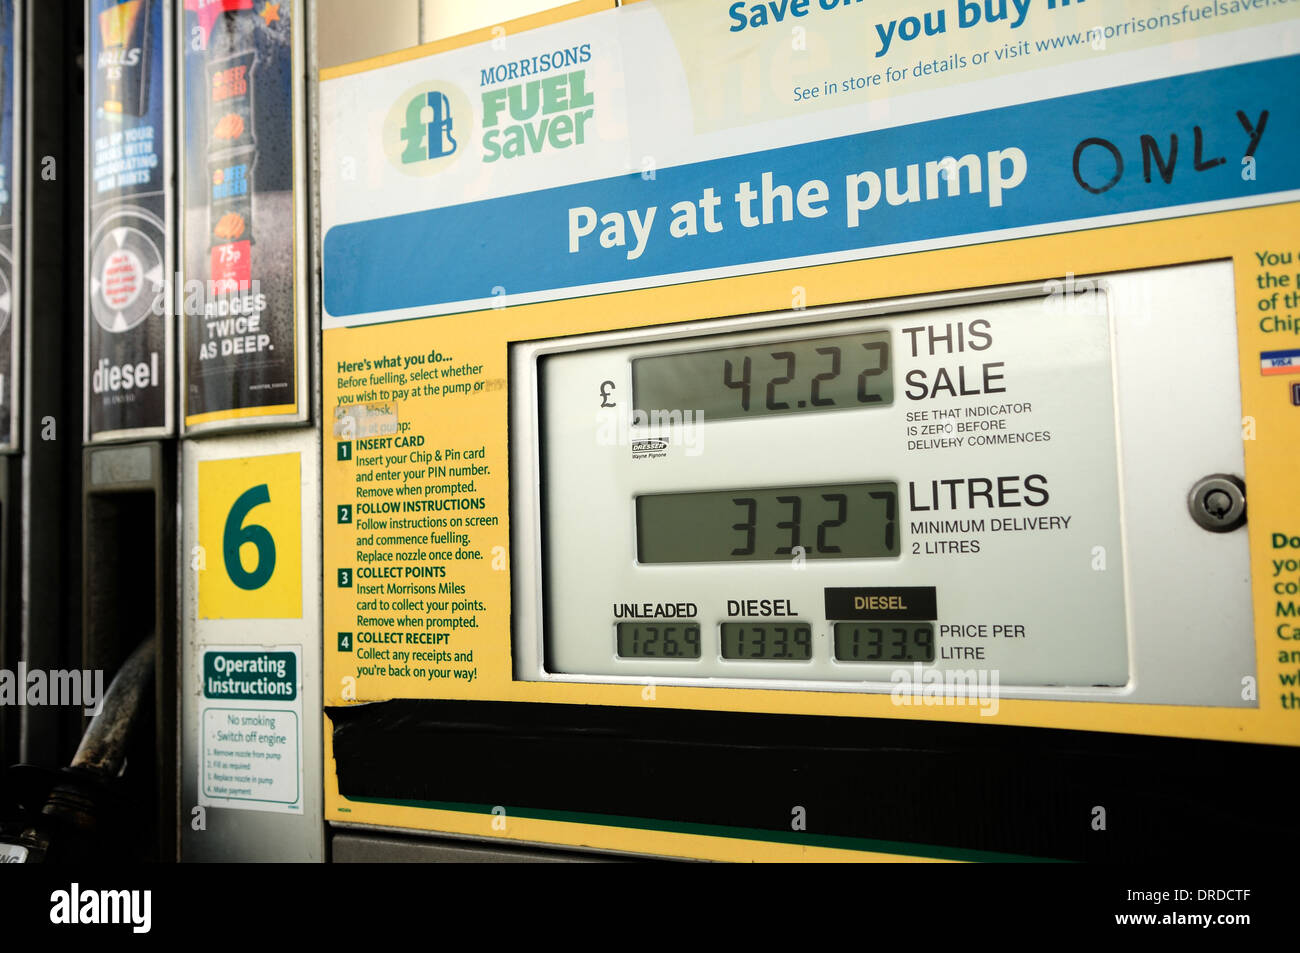 Morrisons fuel pay at the pump Stock Photo, Royalty Free Image ...